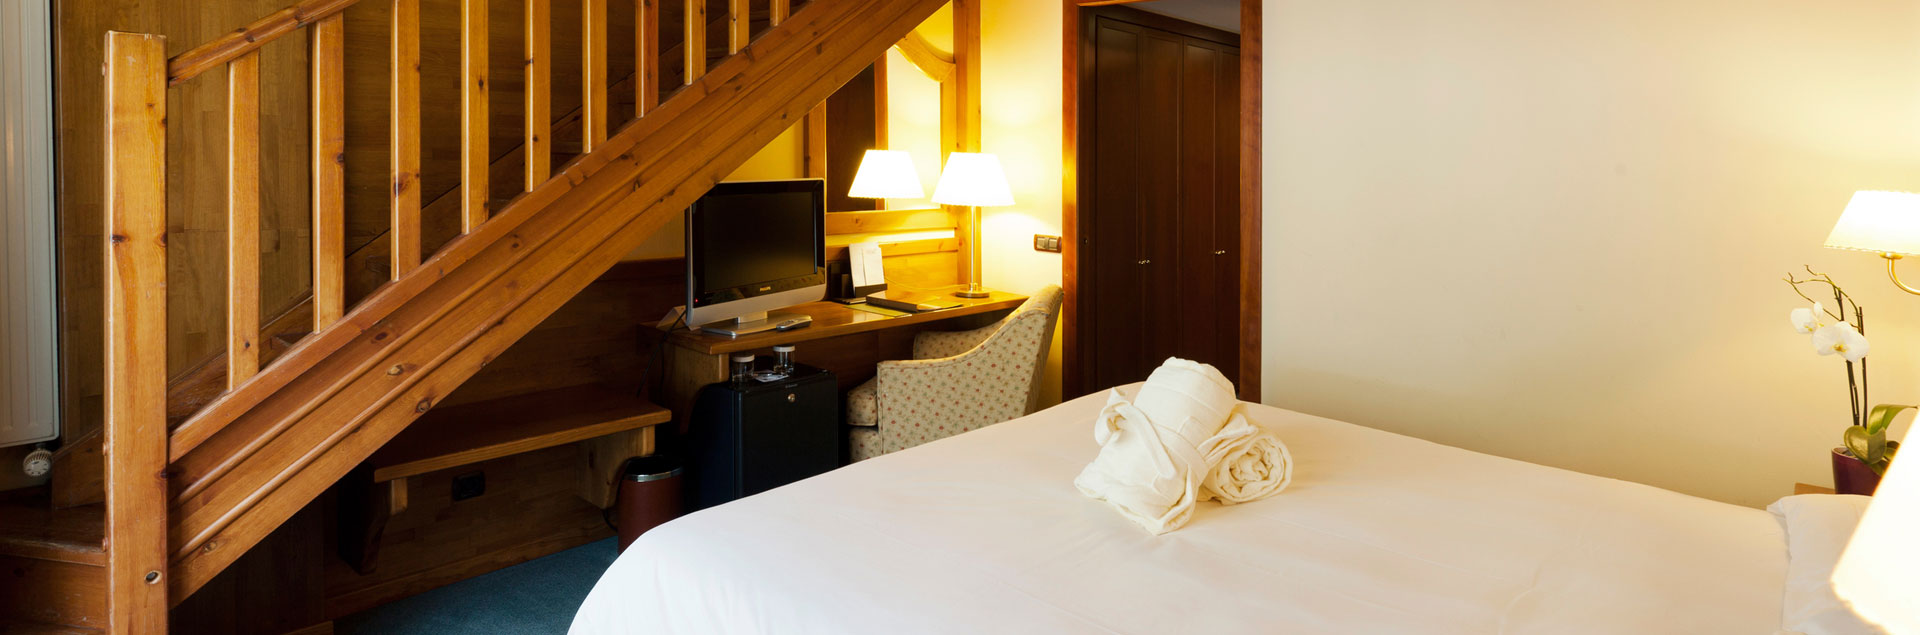 book online 4* hotel at the foot of the slopes